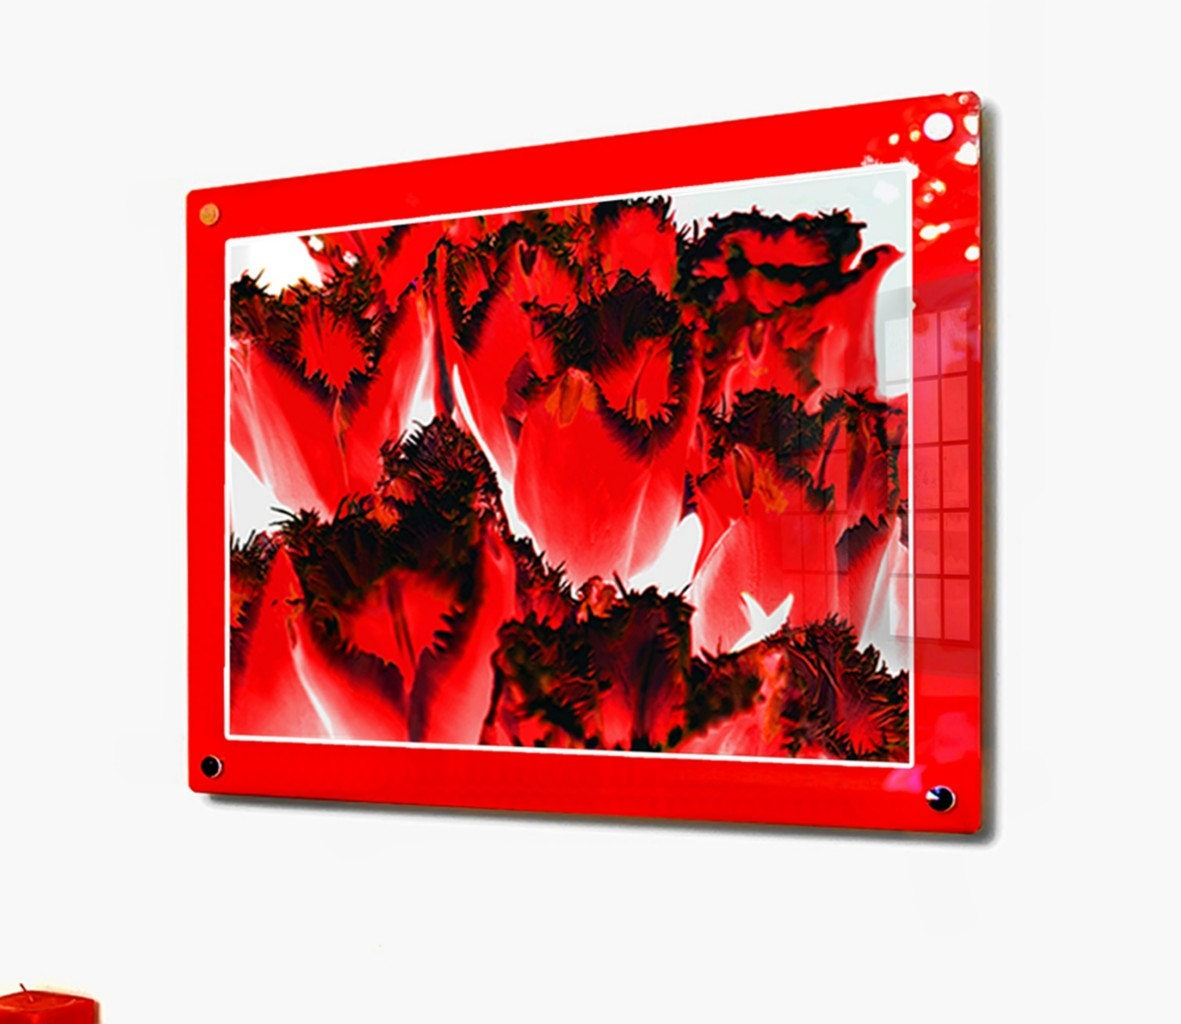 Cheshire acrylic chilli red 10mm picture wall mount frame for 8 x cheshire acrylic chilli red 10mm picture wall mount frame for 8 x 10 10 x 12 10 x 20 16 x 20 16 x 24 20 x 20 20 x 24 20 x 30 jeuxipadfo Gallery